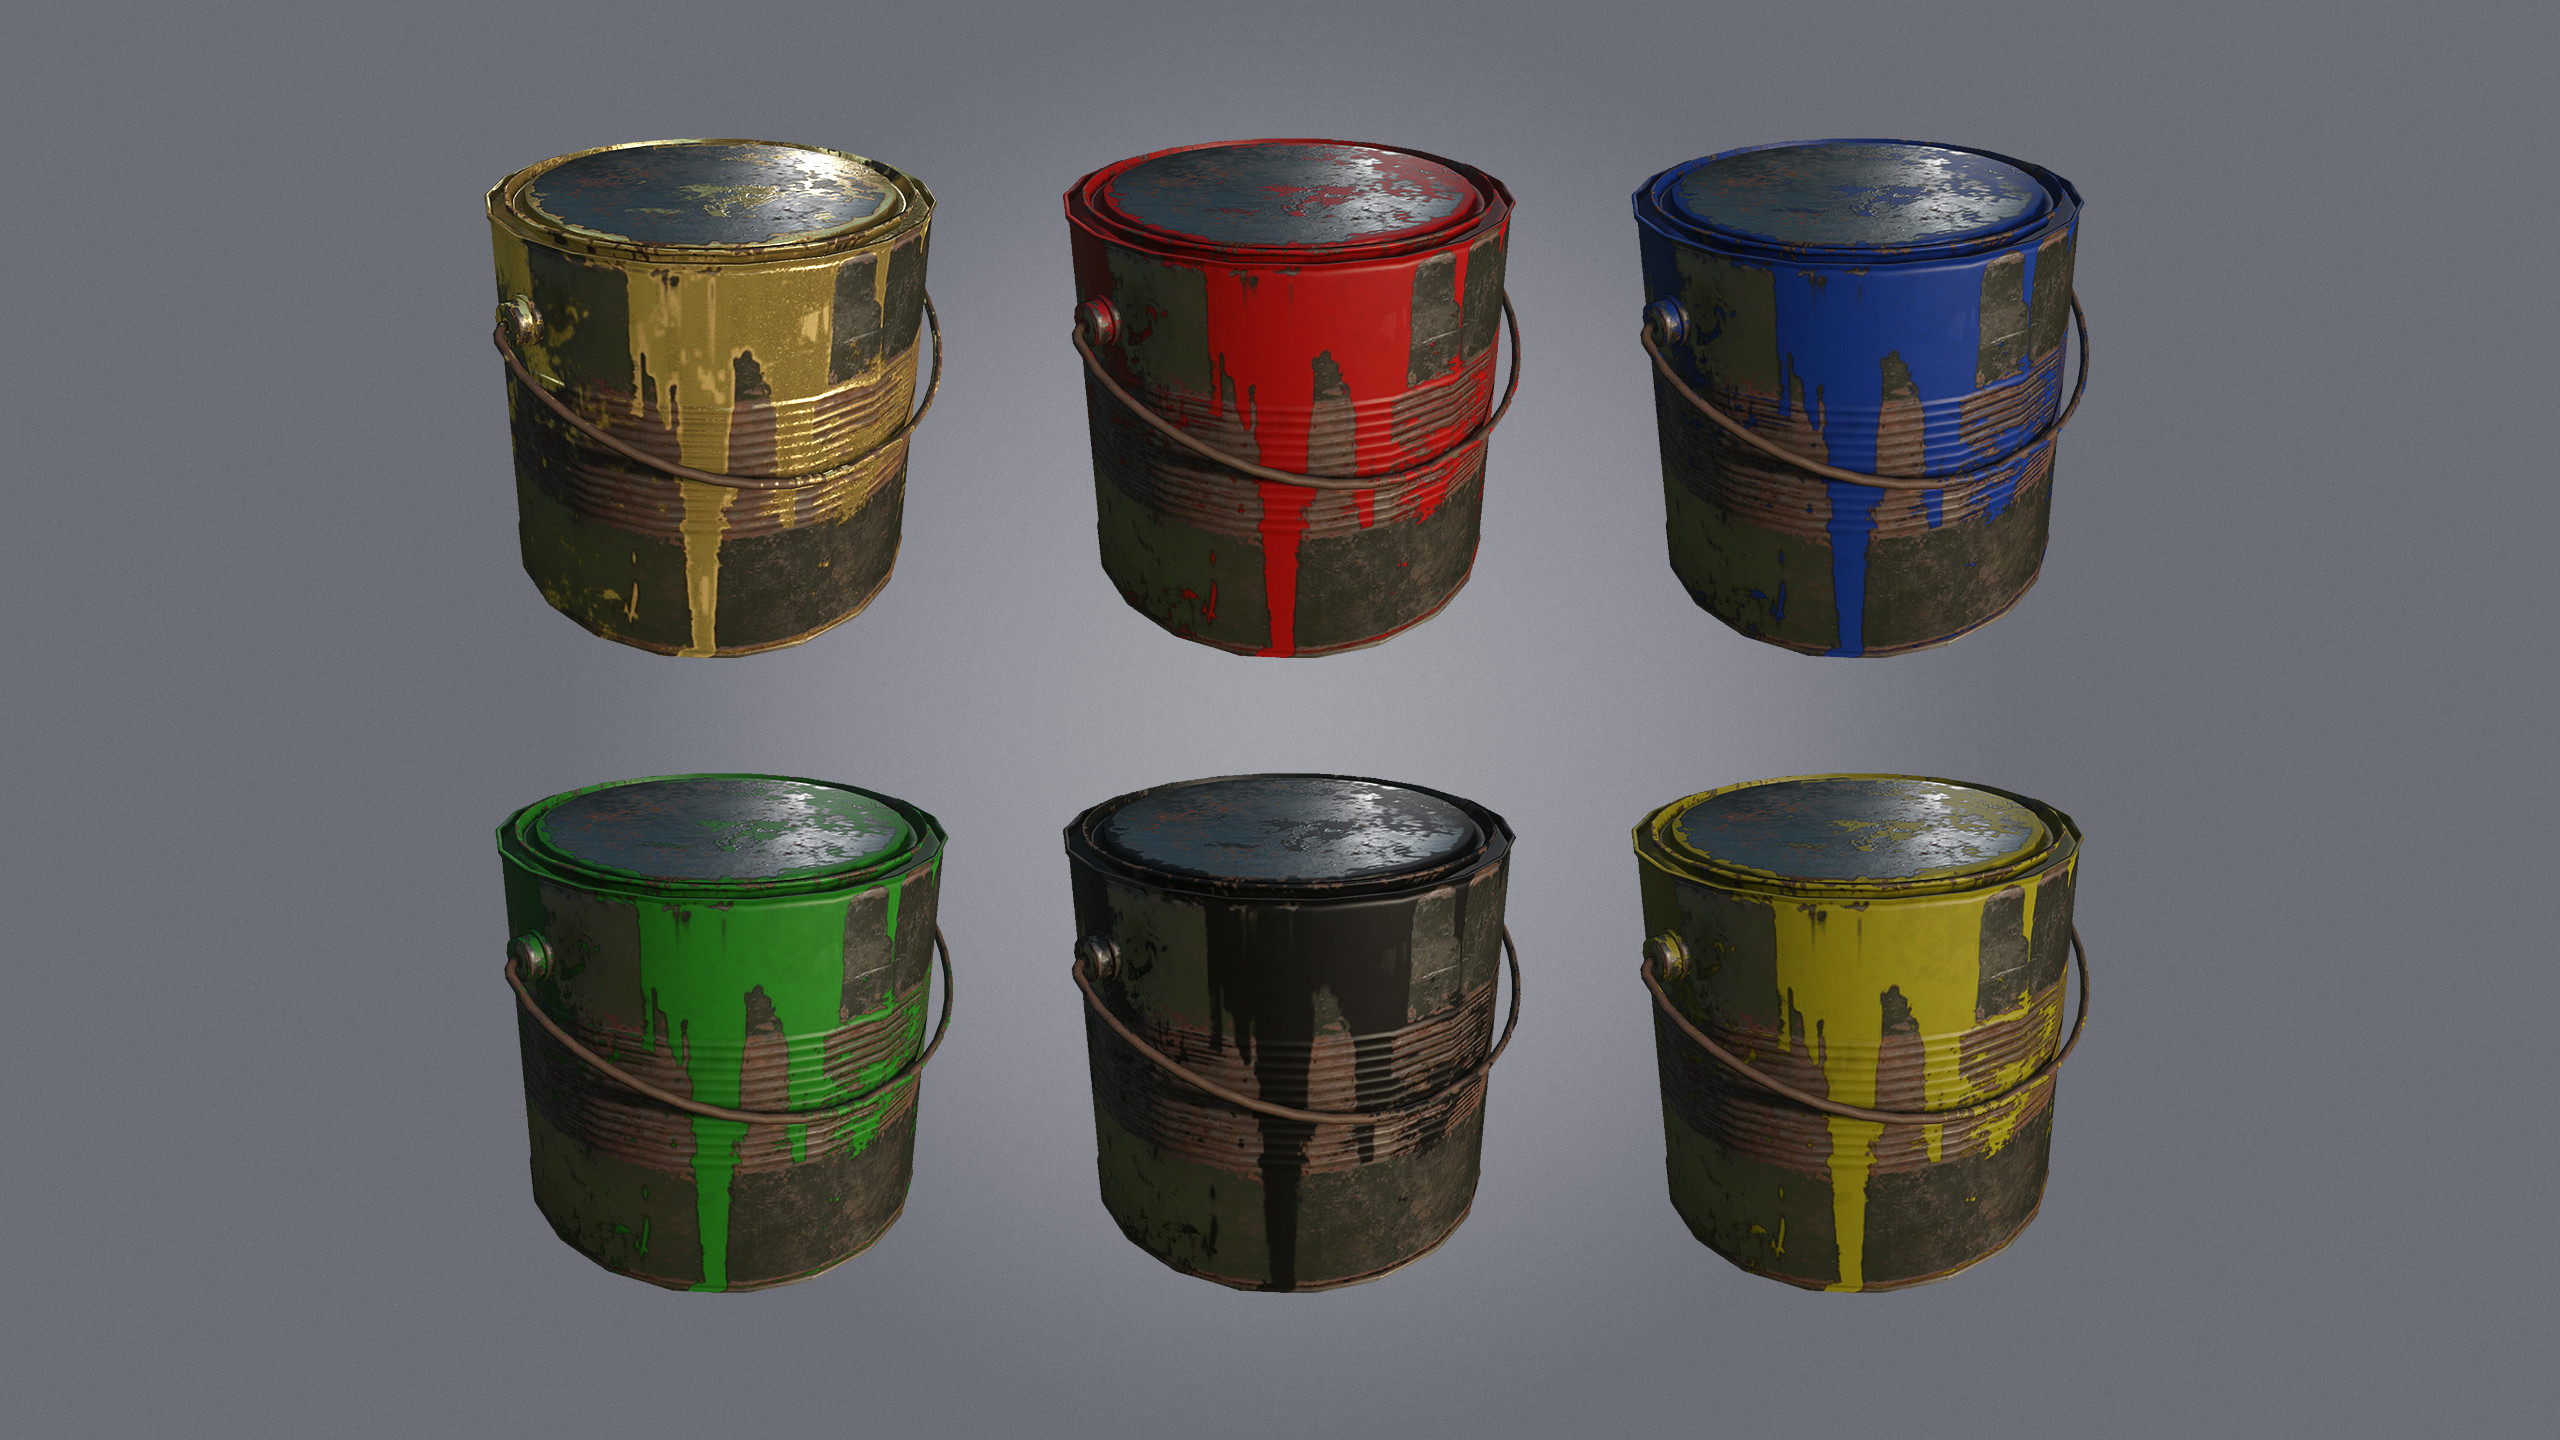 Buckets of Paint, used to paint Items/Bases.